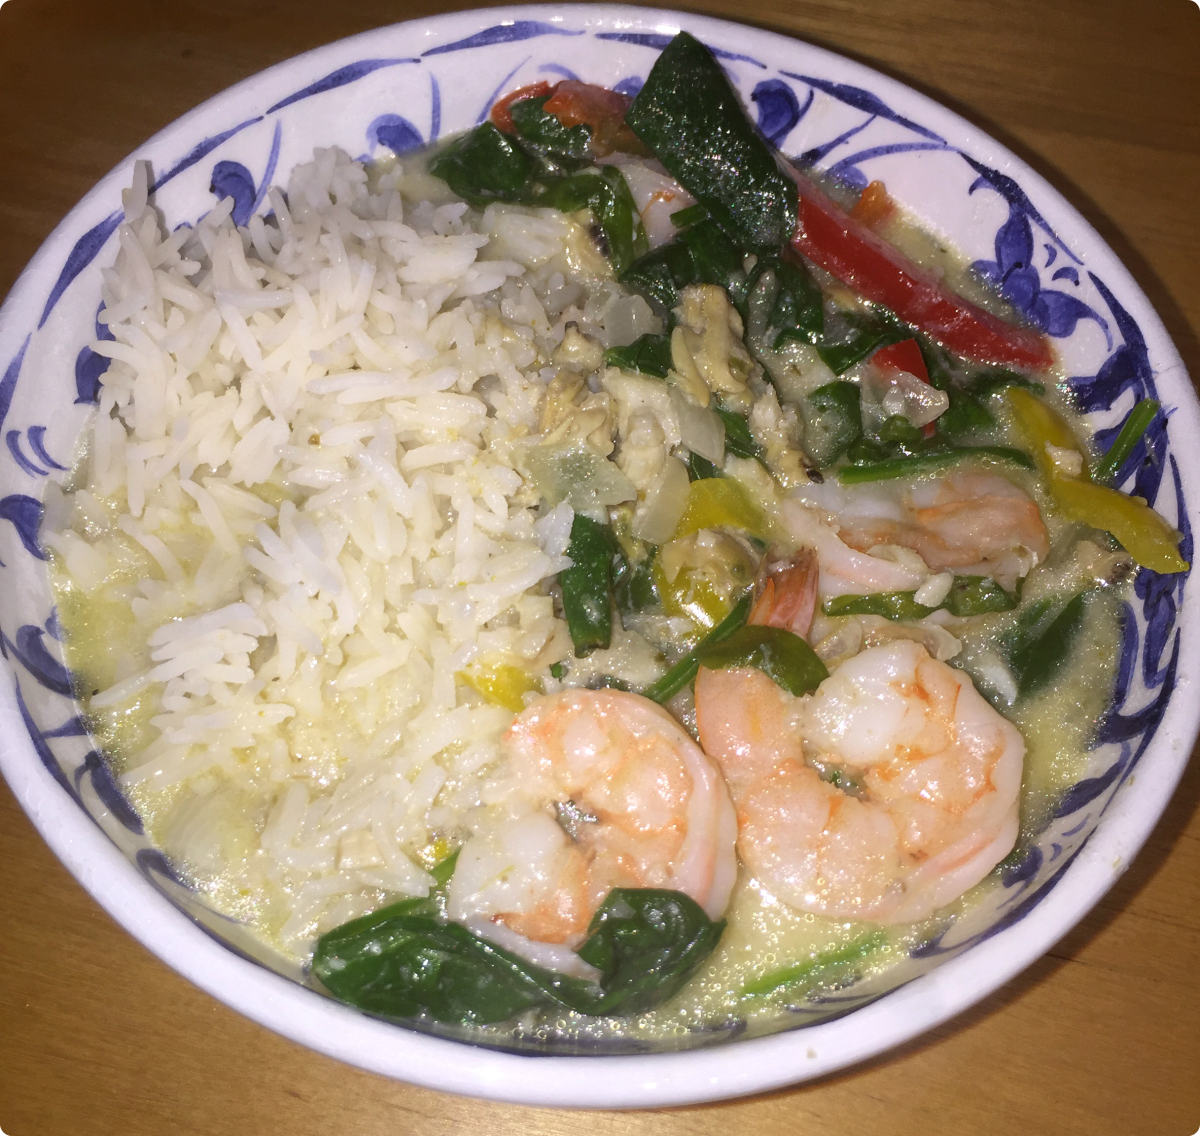 Winter food: Seafood curry with rice